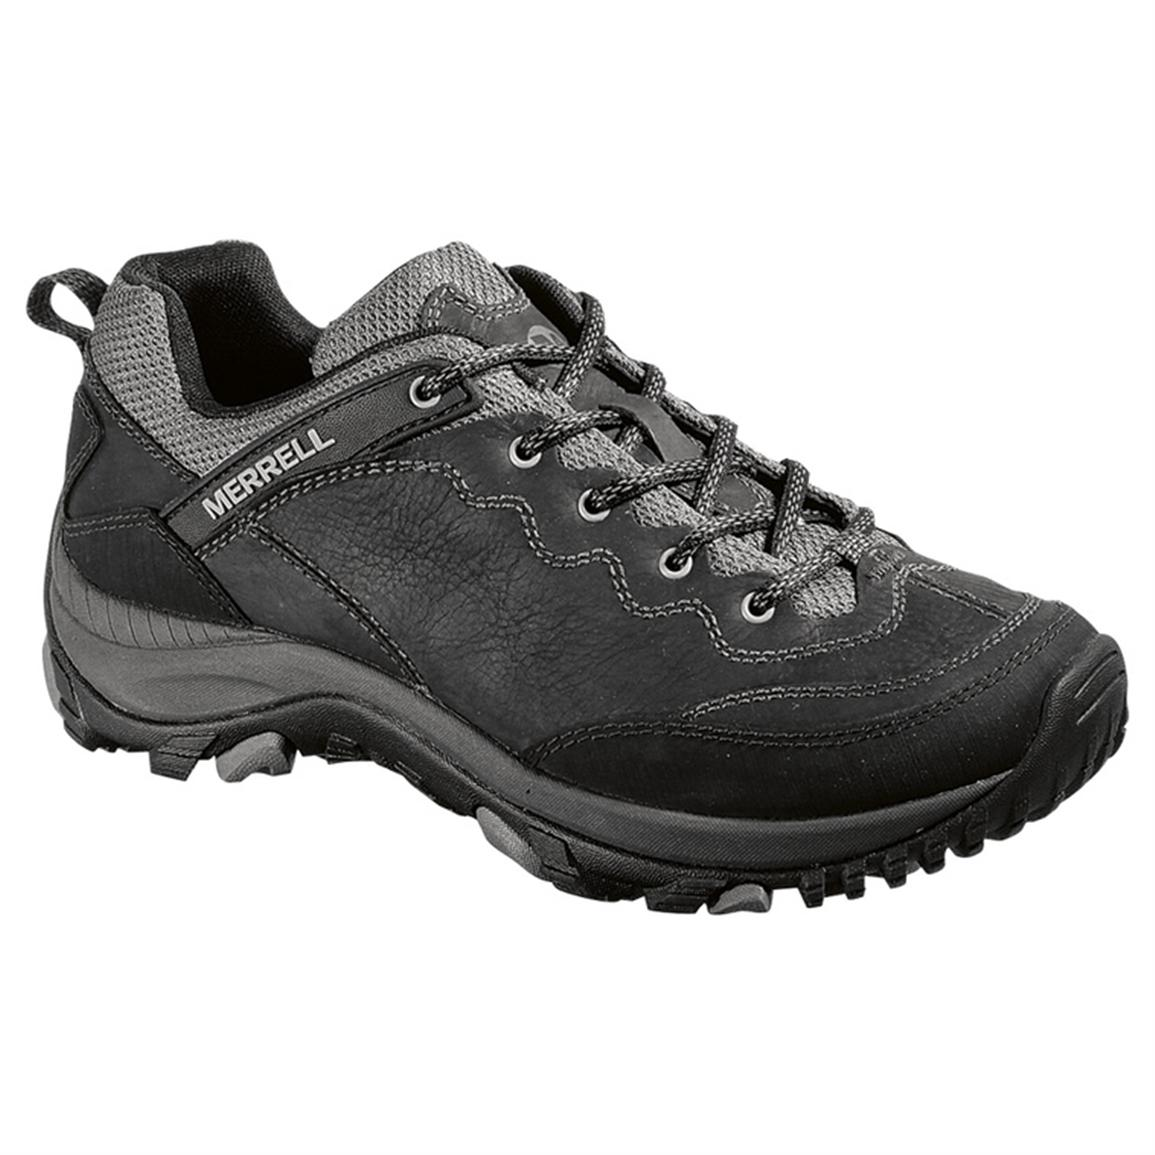 Women's Merrell® Salida Trekker Hiking Shoes, Black